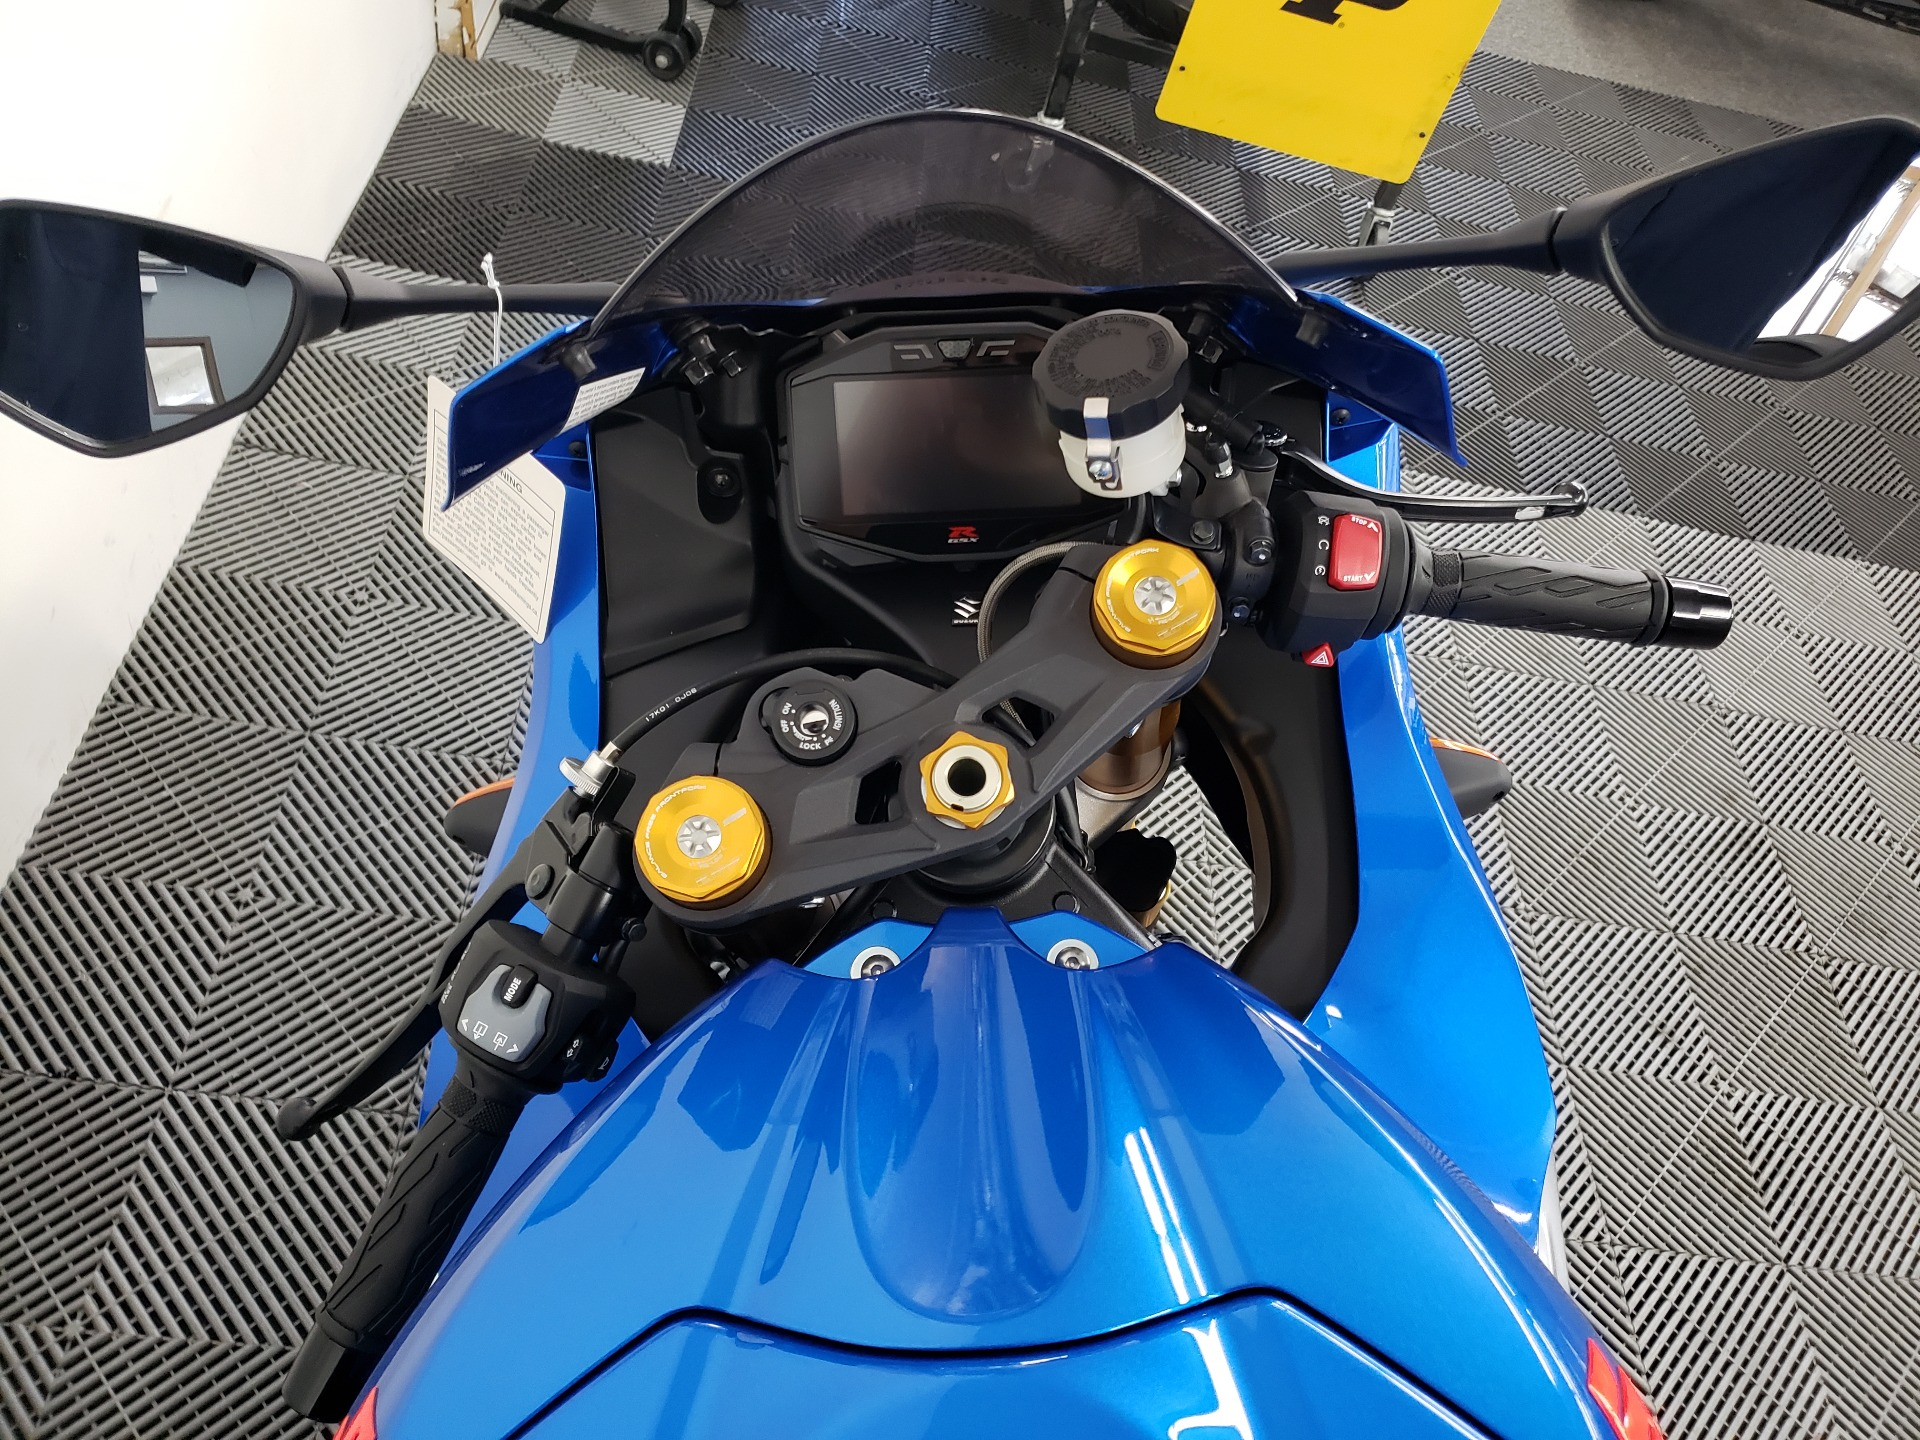 2021 Suzuki GSX-R1000R 100th Anniversary Edition in Van Nuys, California - Photo 5